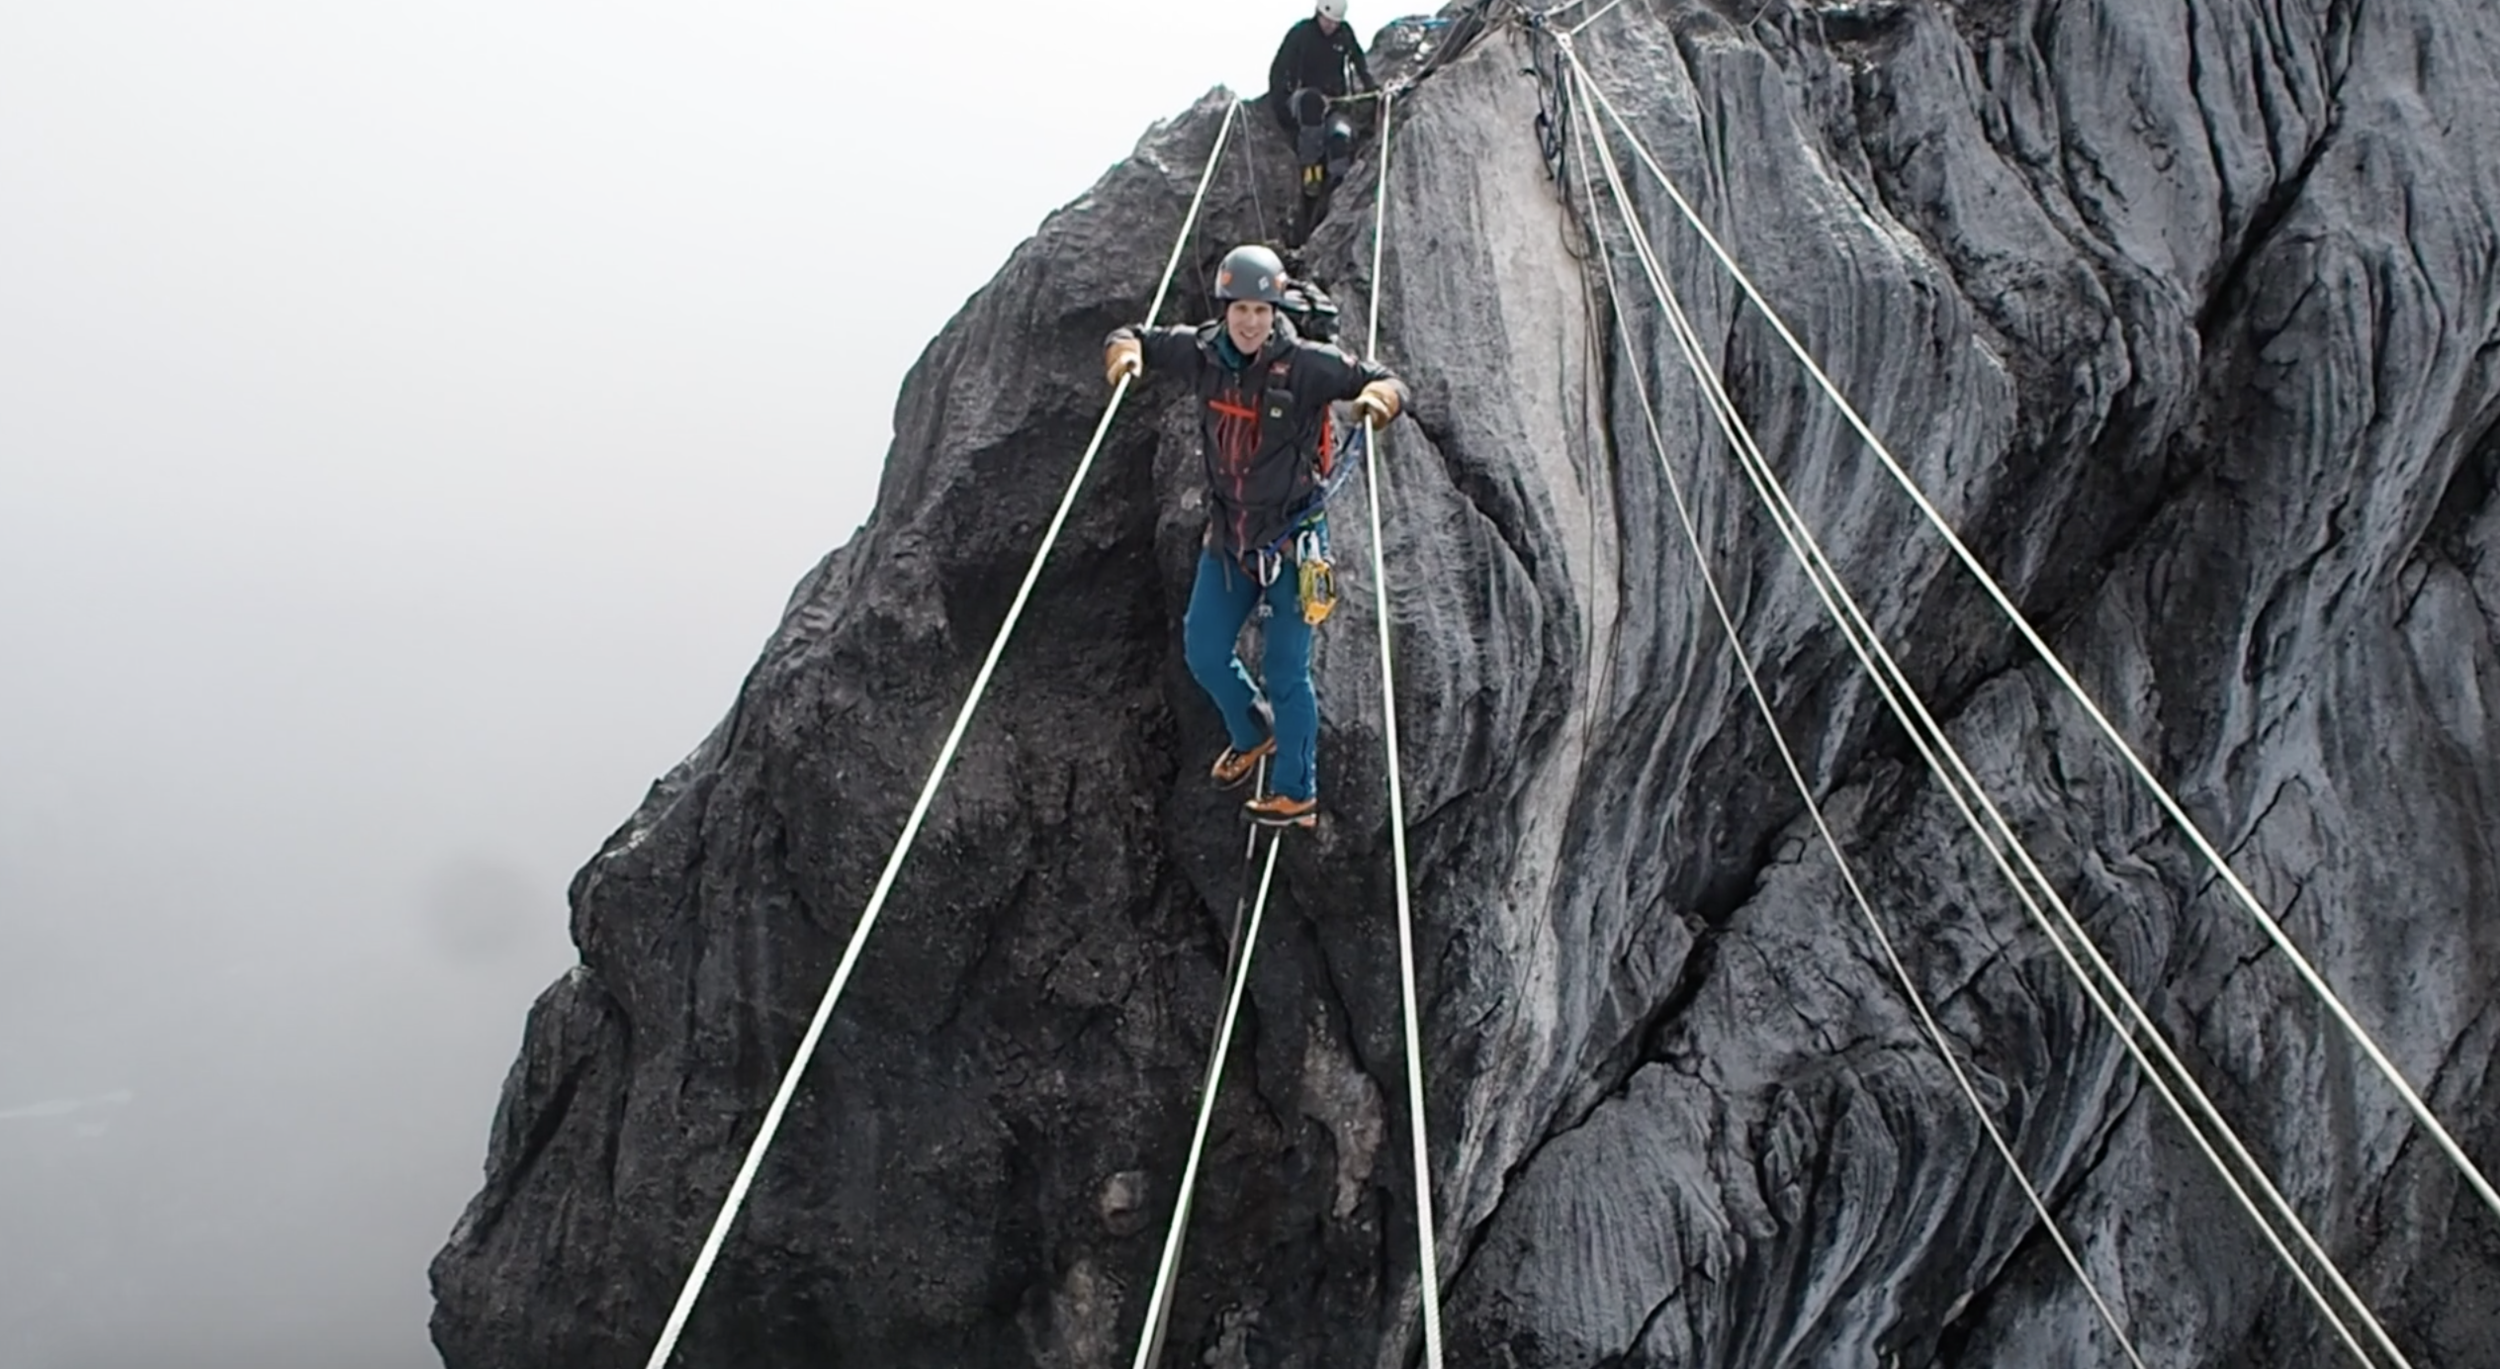 2,000 feet of exposure at the tyrolean traverse on Carstensz Pyramid.